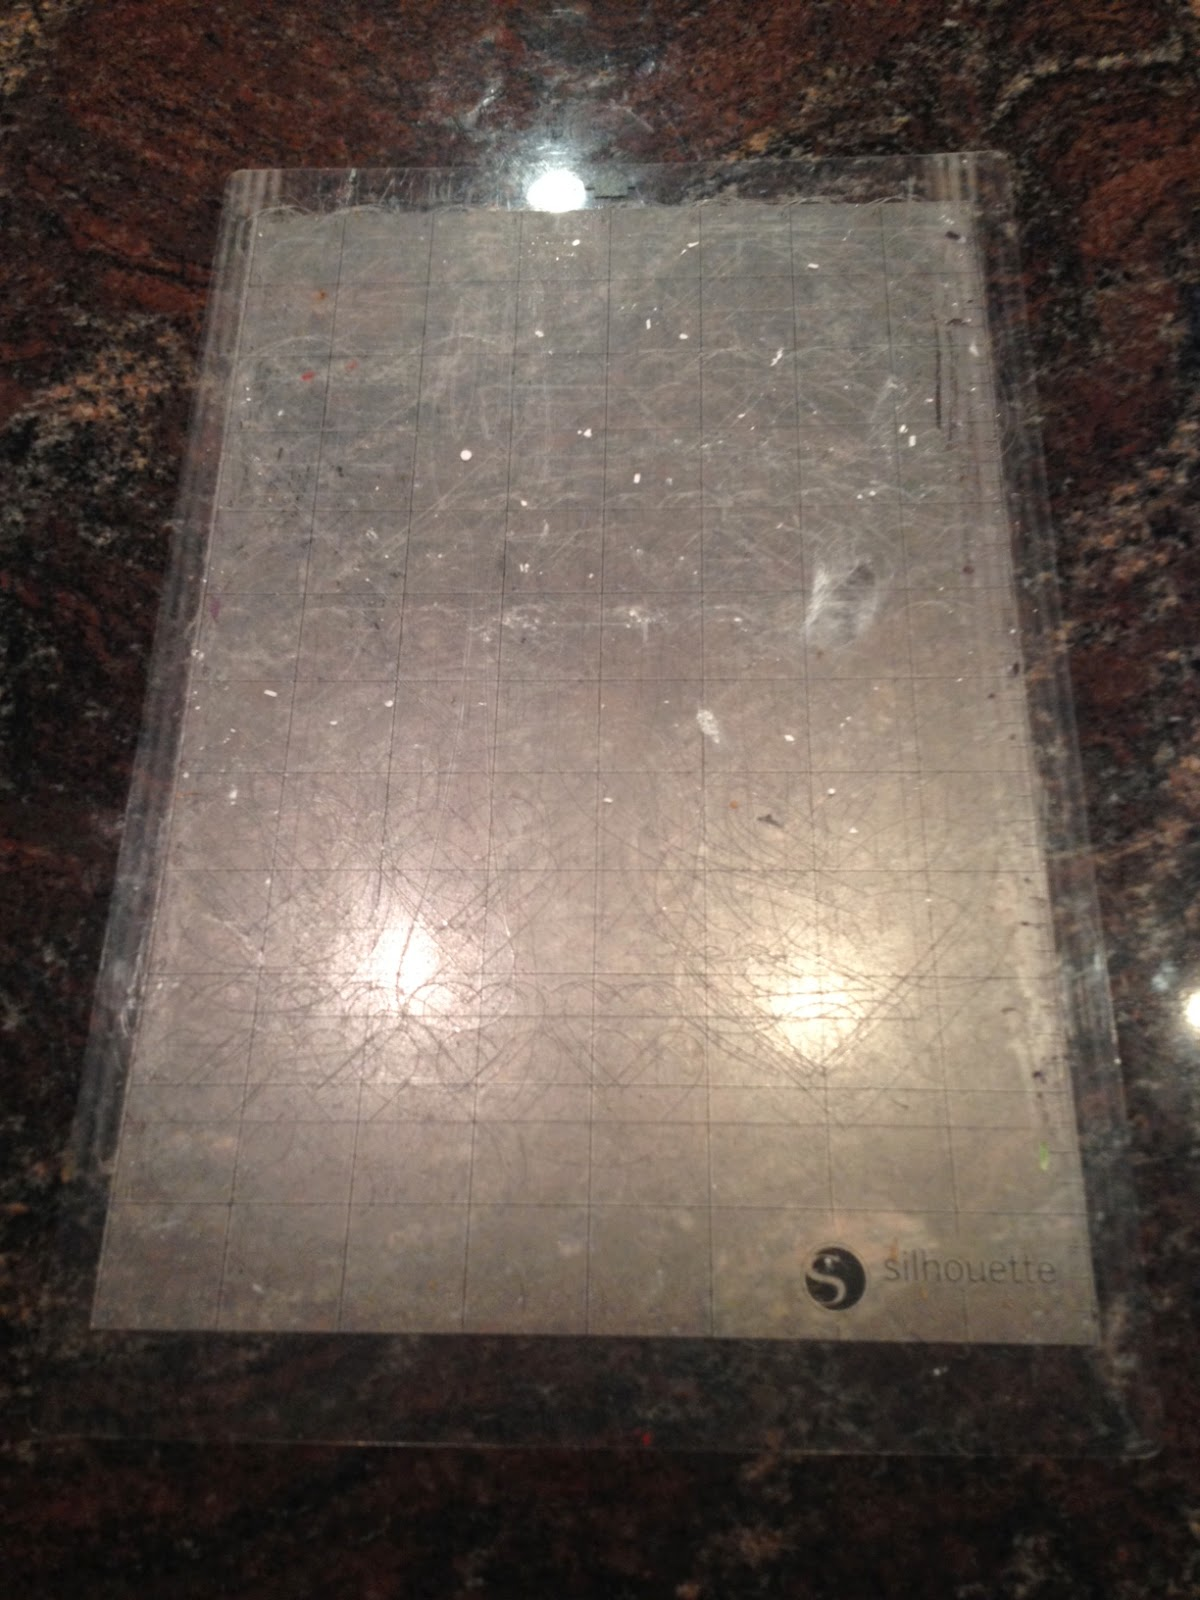 Cutting mat, Silhouette, cleaning, remove, lint, dust, paper